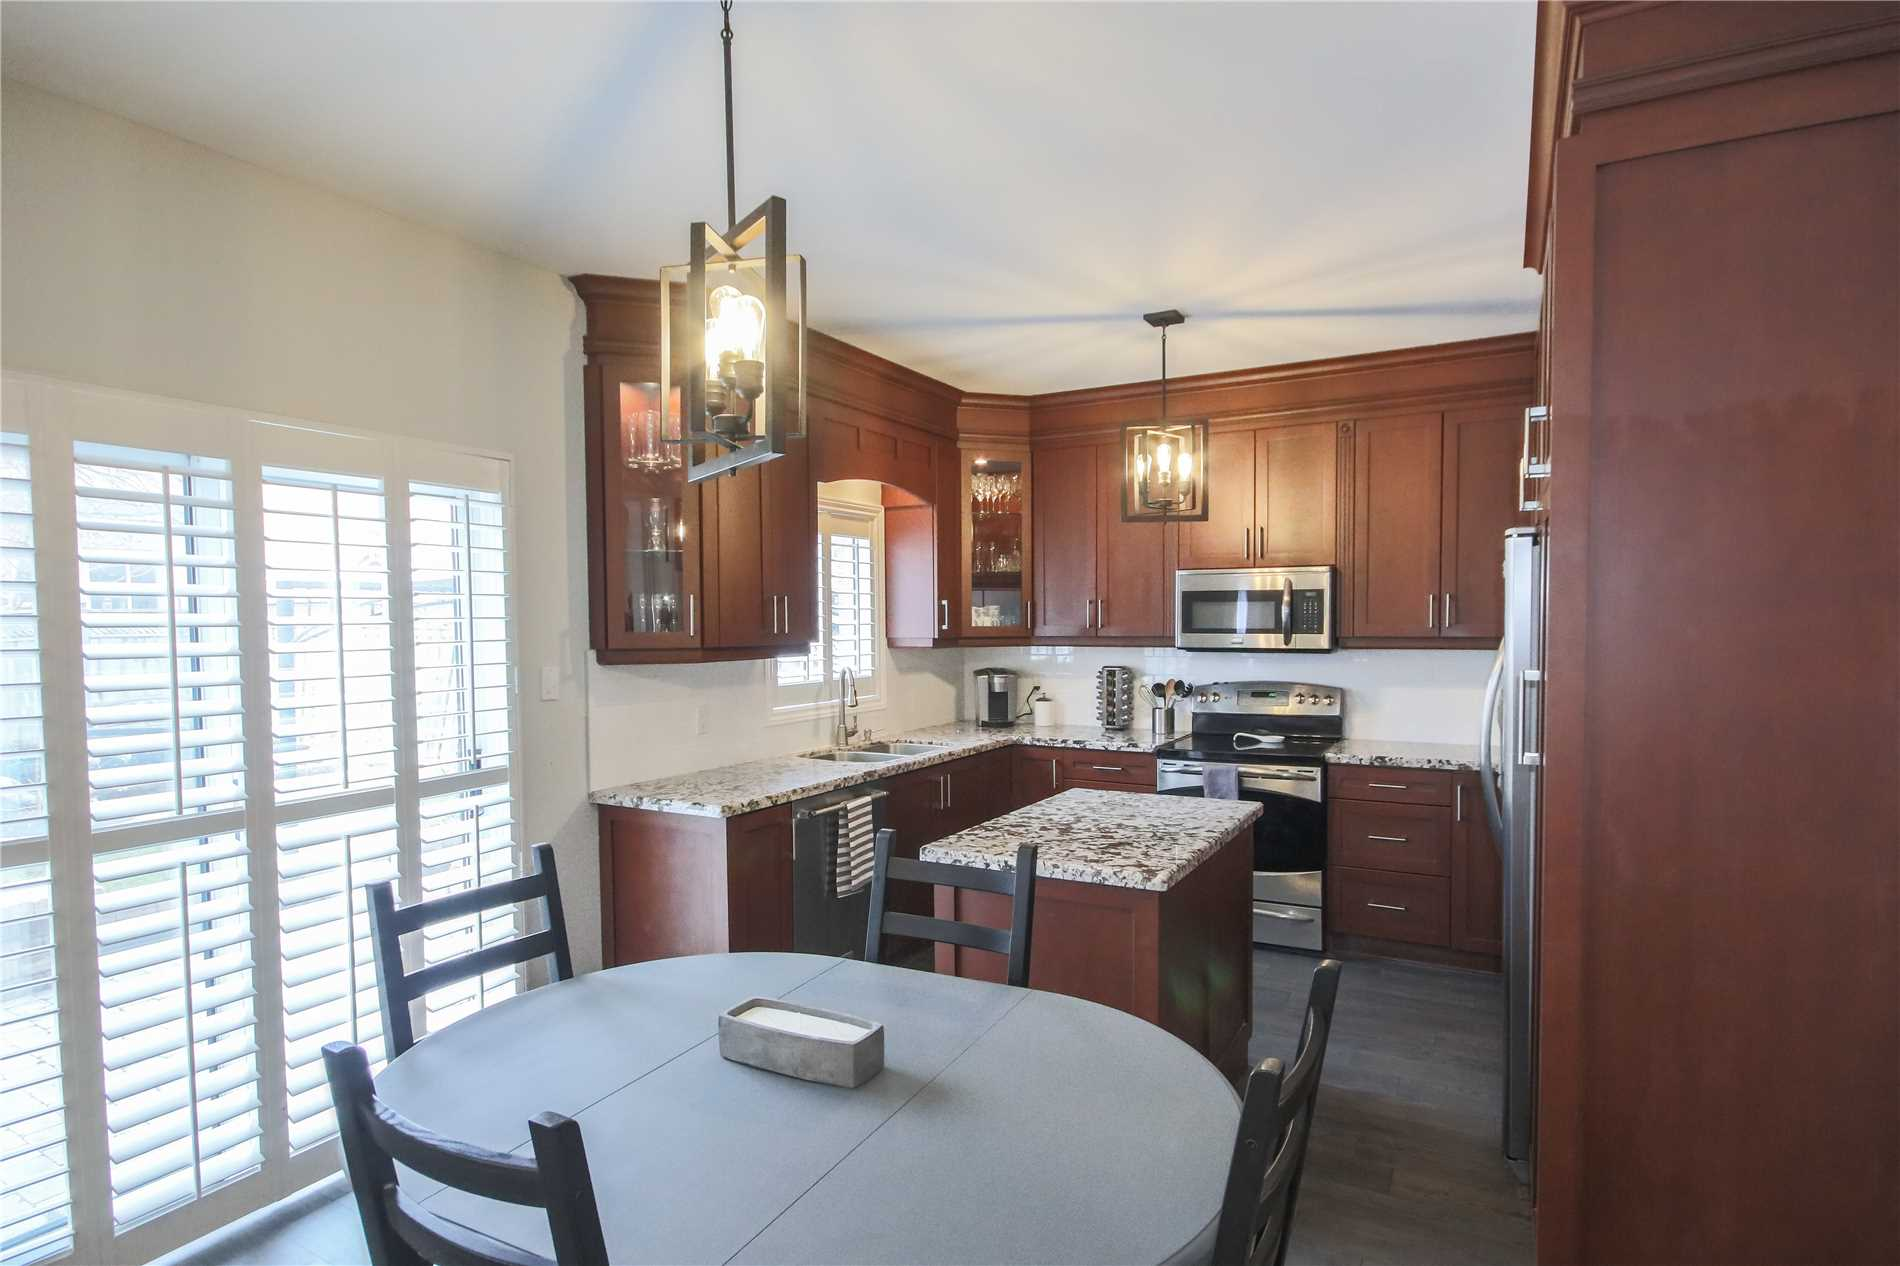 249 Hoover Park Dr, Whitchurch-Stouffville N4503276